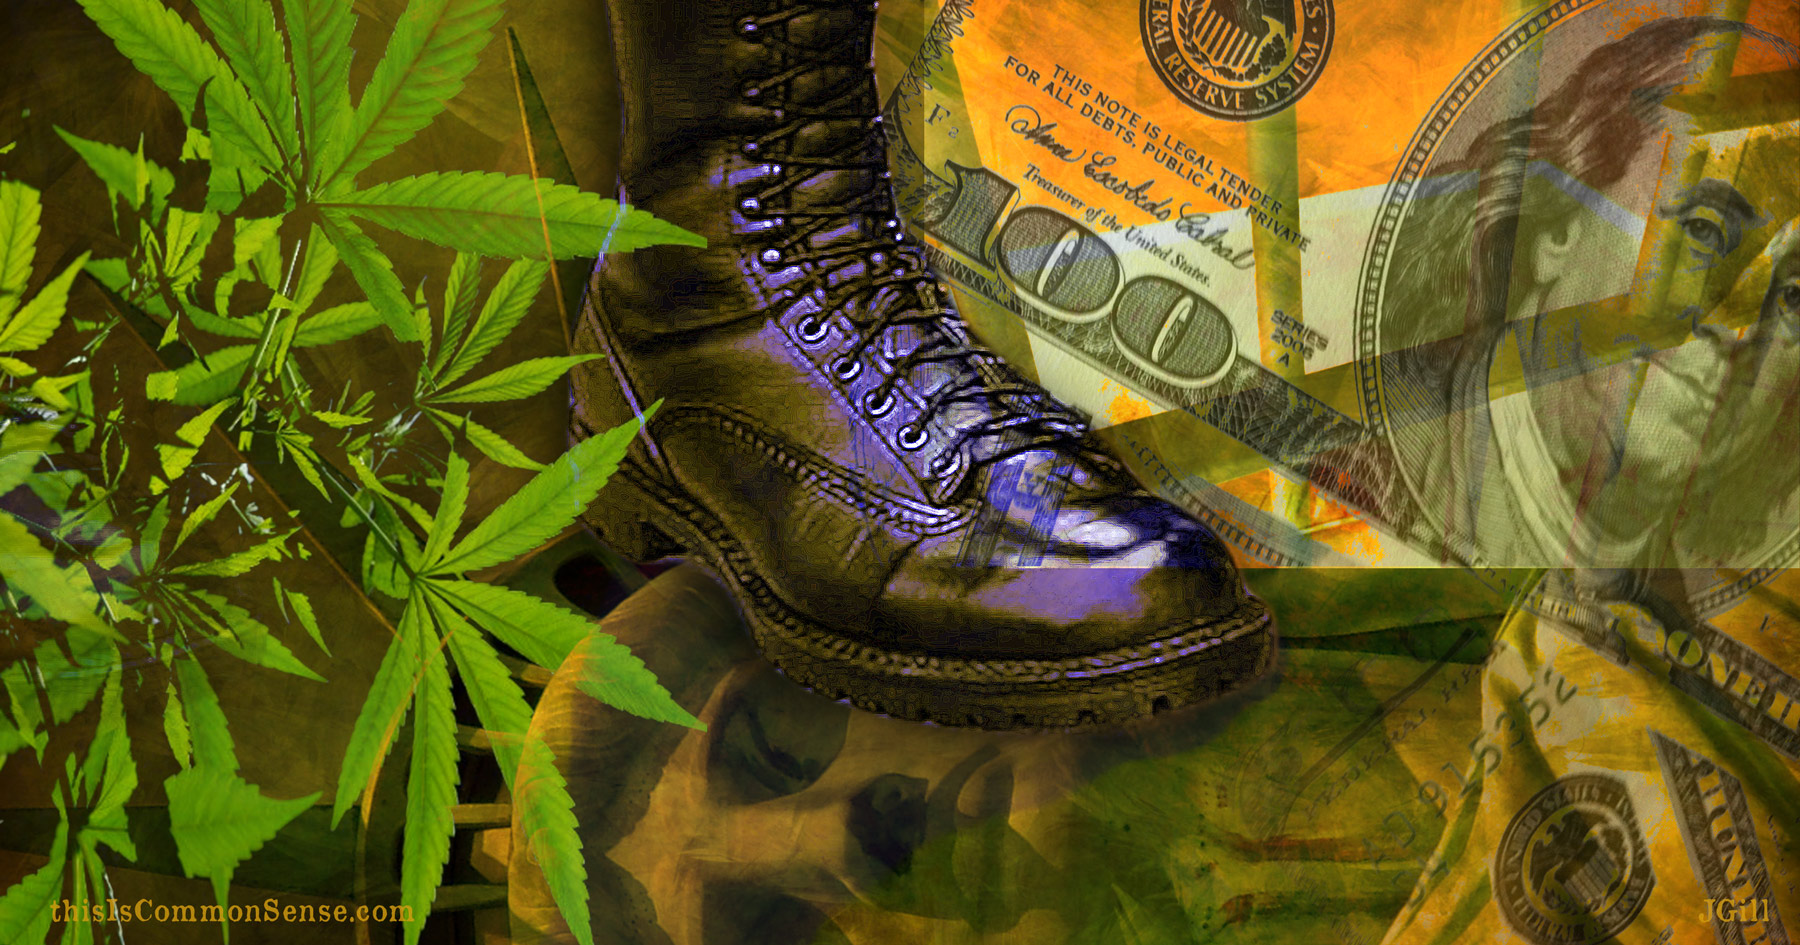 cannabis, marijuana, legalization, tax, taxes, federal, Colorado, illustration, Jim Gill, Paul Jacob, Common sense